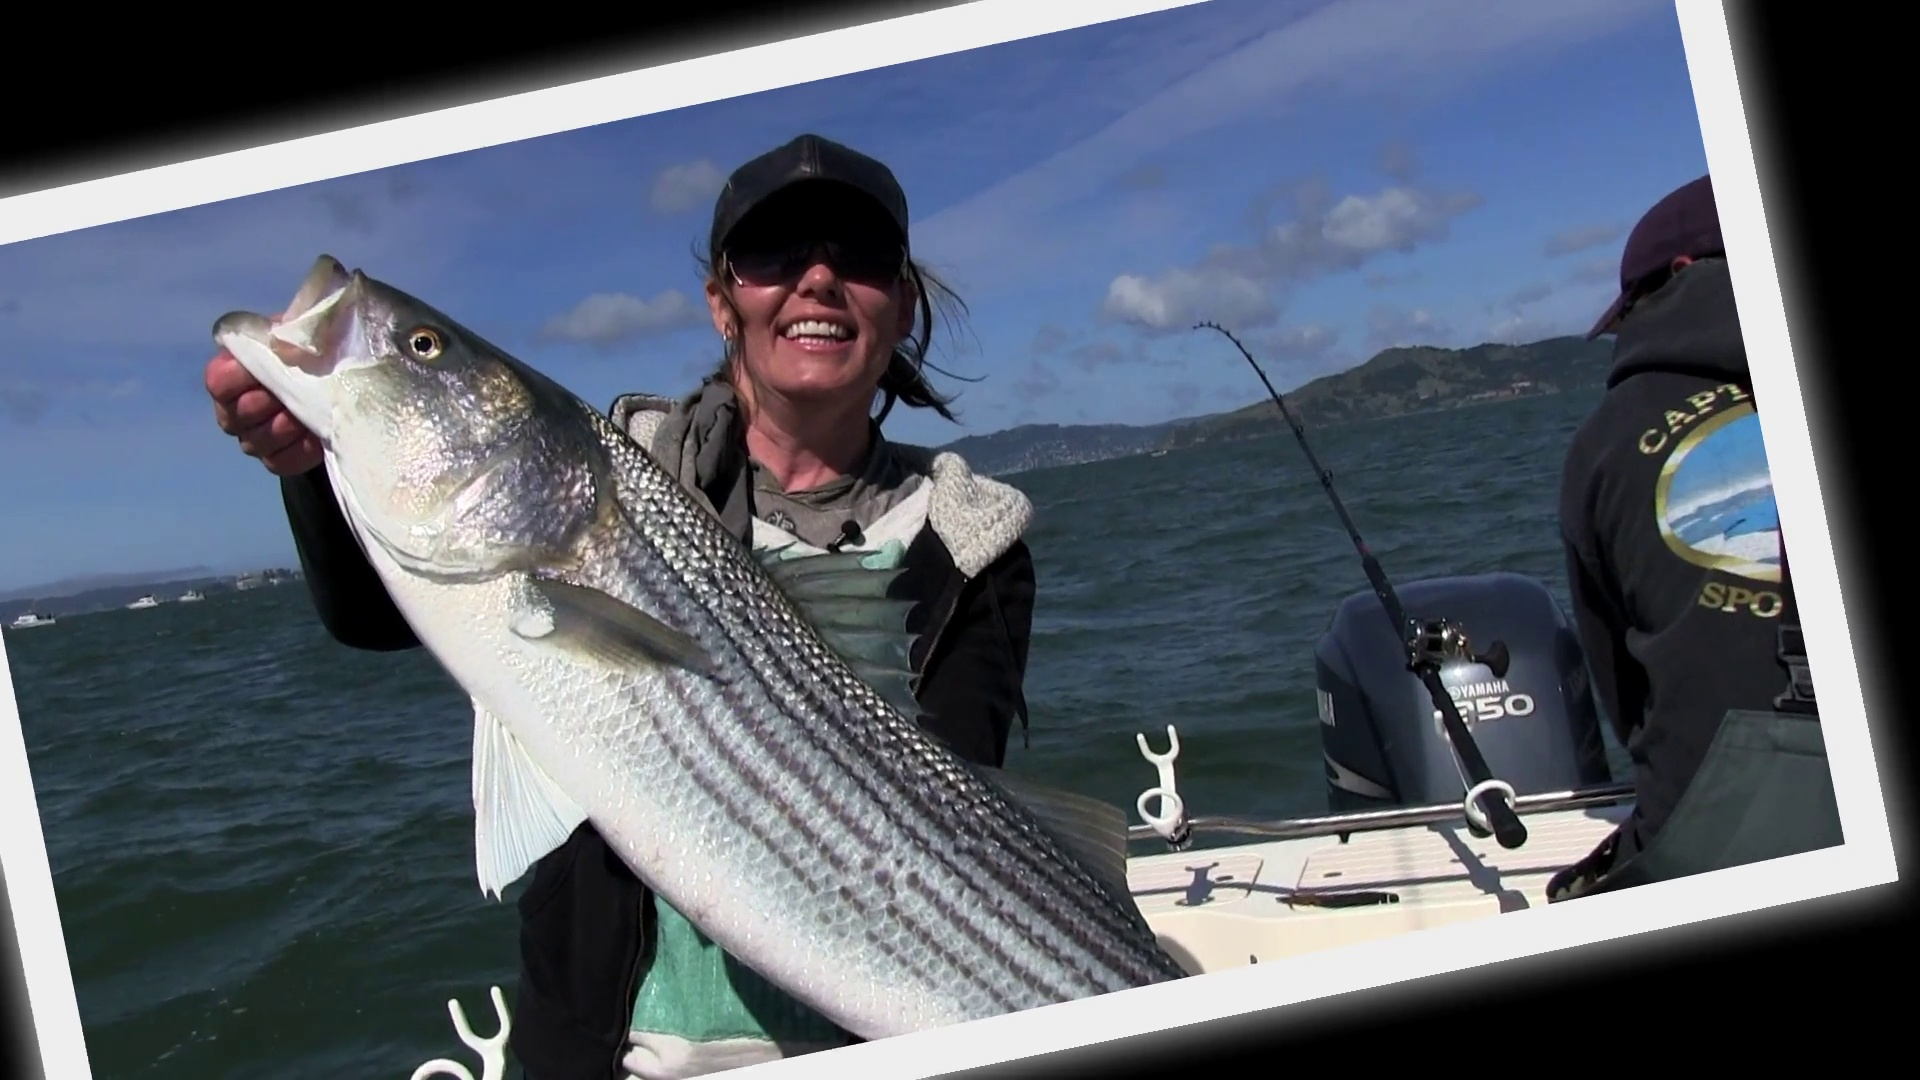 Halibut and Striped Bass fishing in the San Francisco Bay with Captain Jason of Longfin Sport Fishing